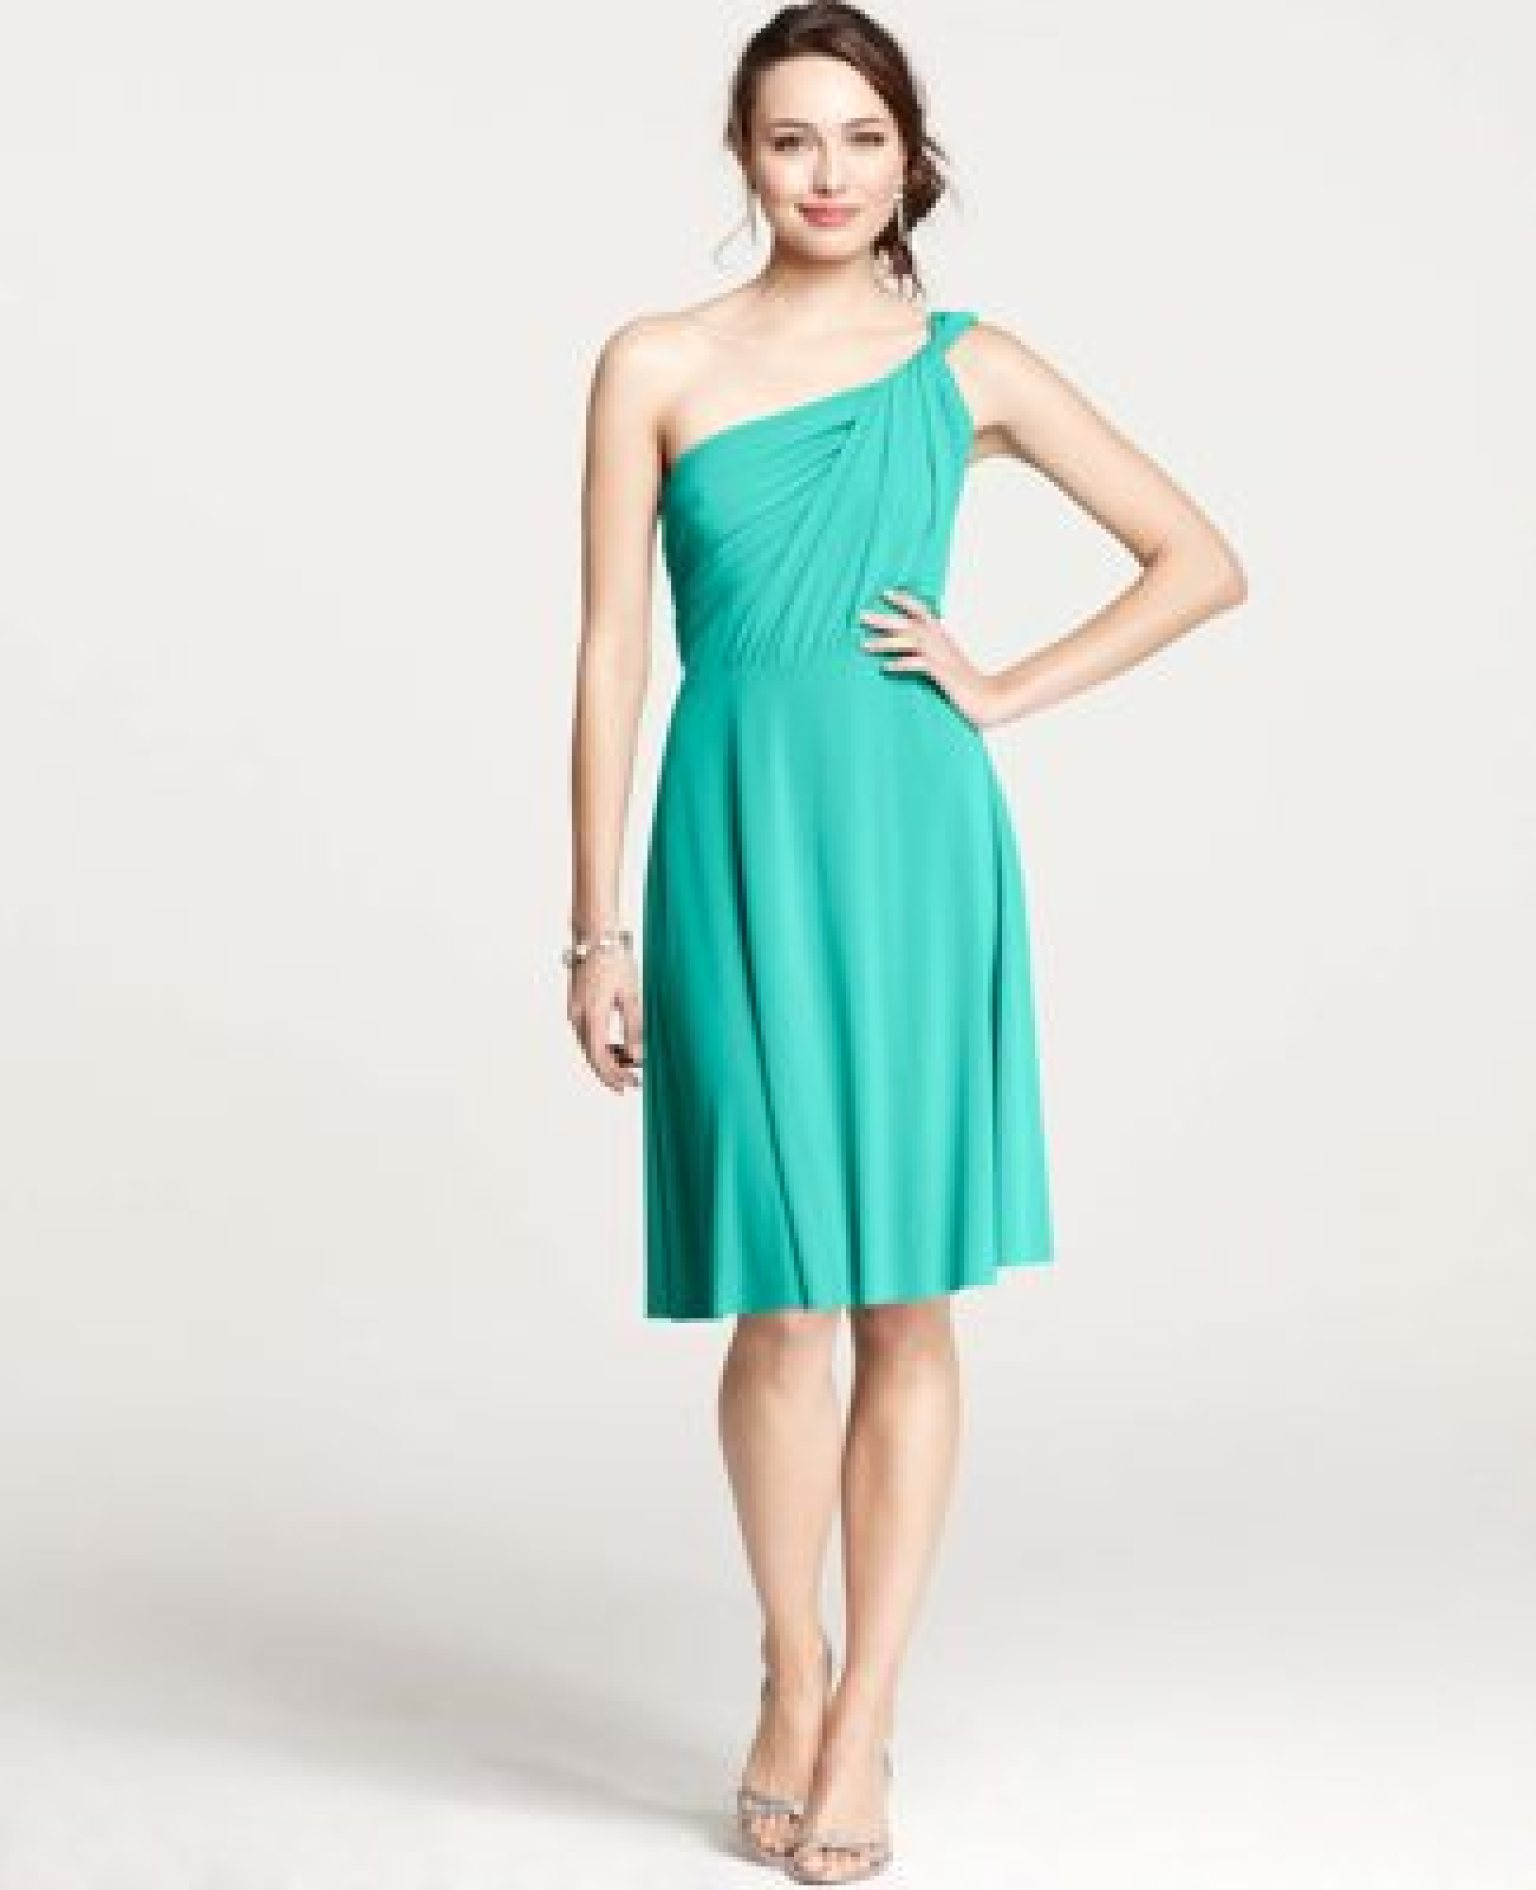 Wedding guest dresses for summer affairs photos huffpost for Best summer wedding guest dresses